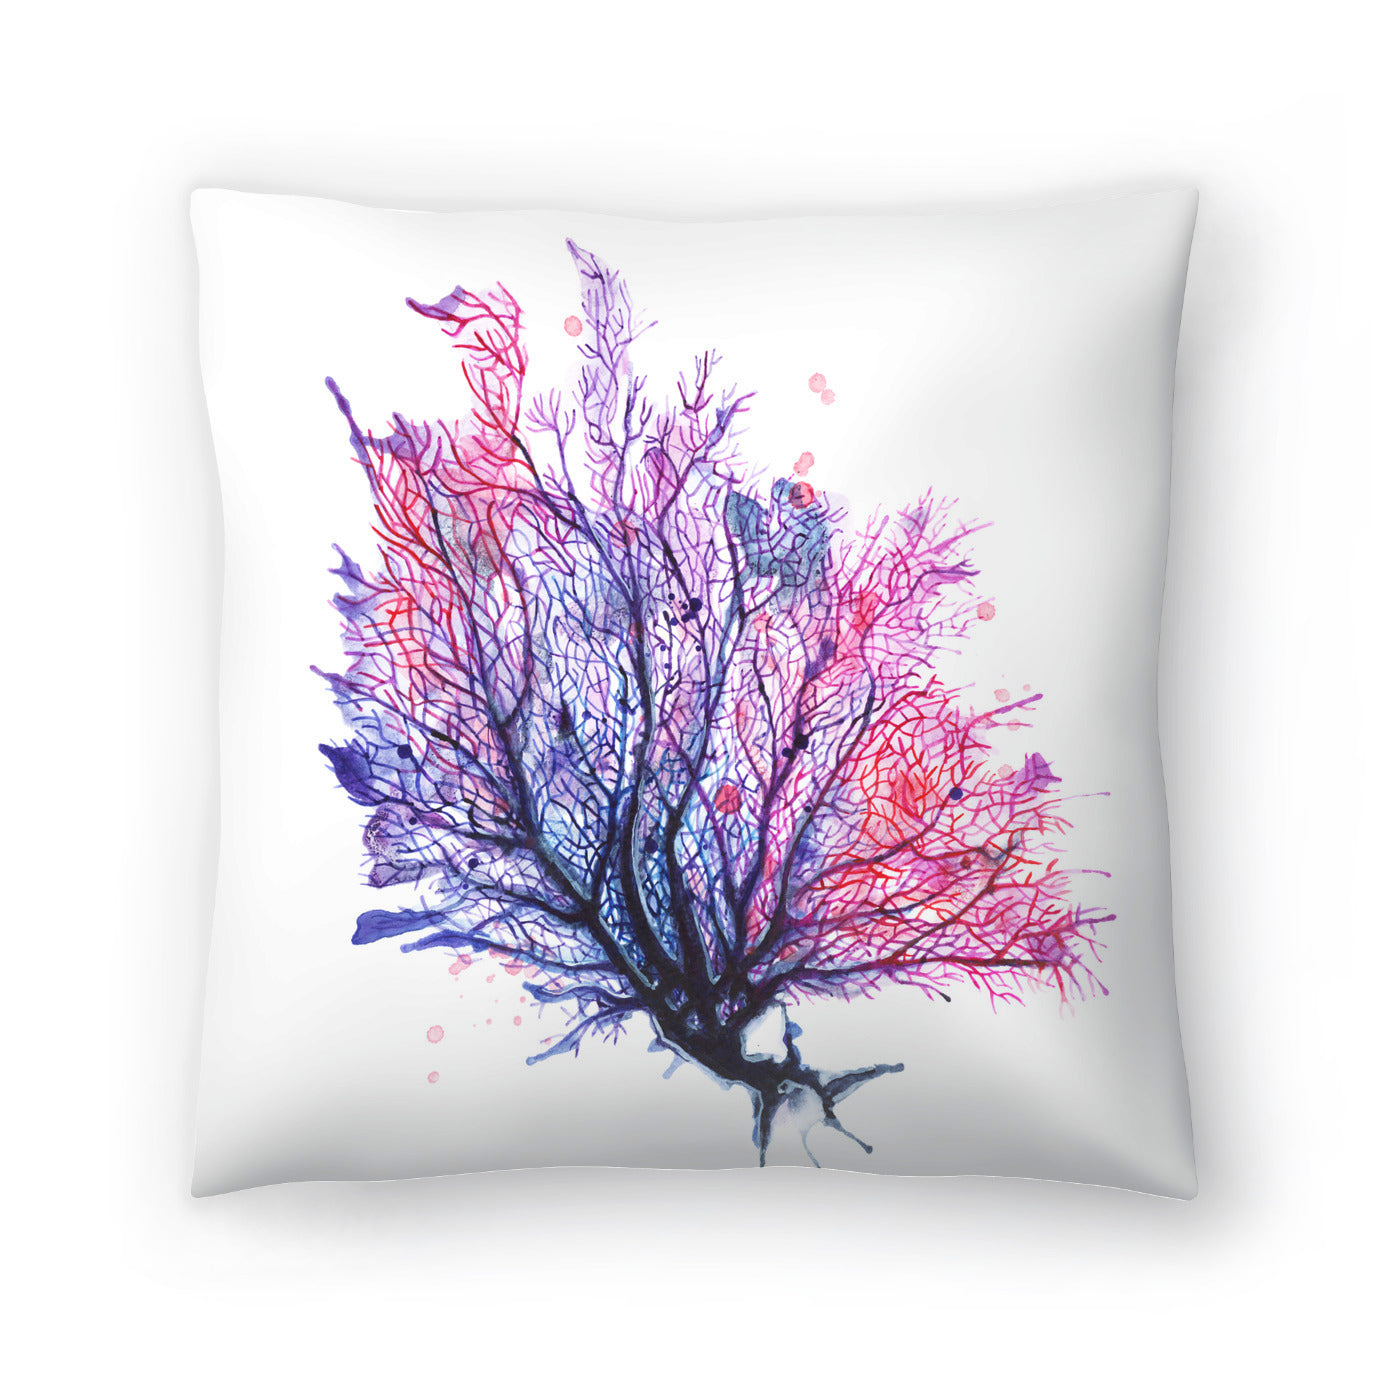 Sea Fan Purple by Sam Nagel Decorative Pillow - Decorative Pillow - Americanflat